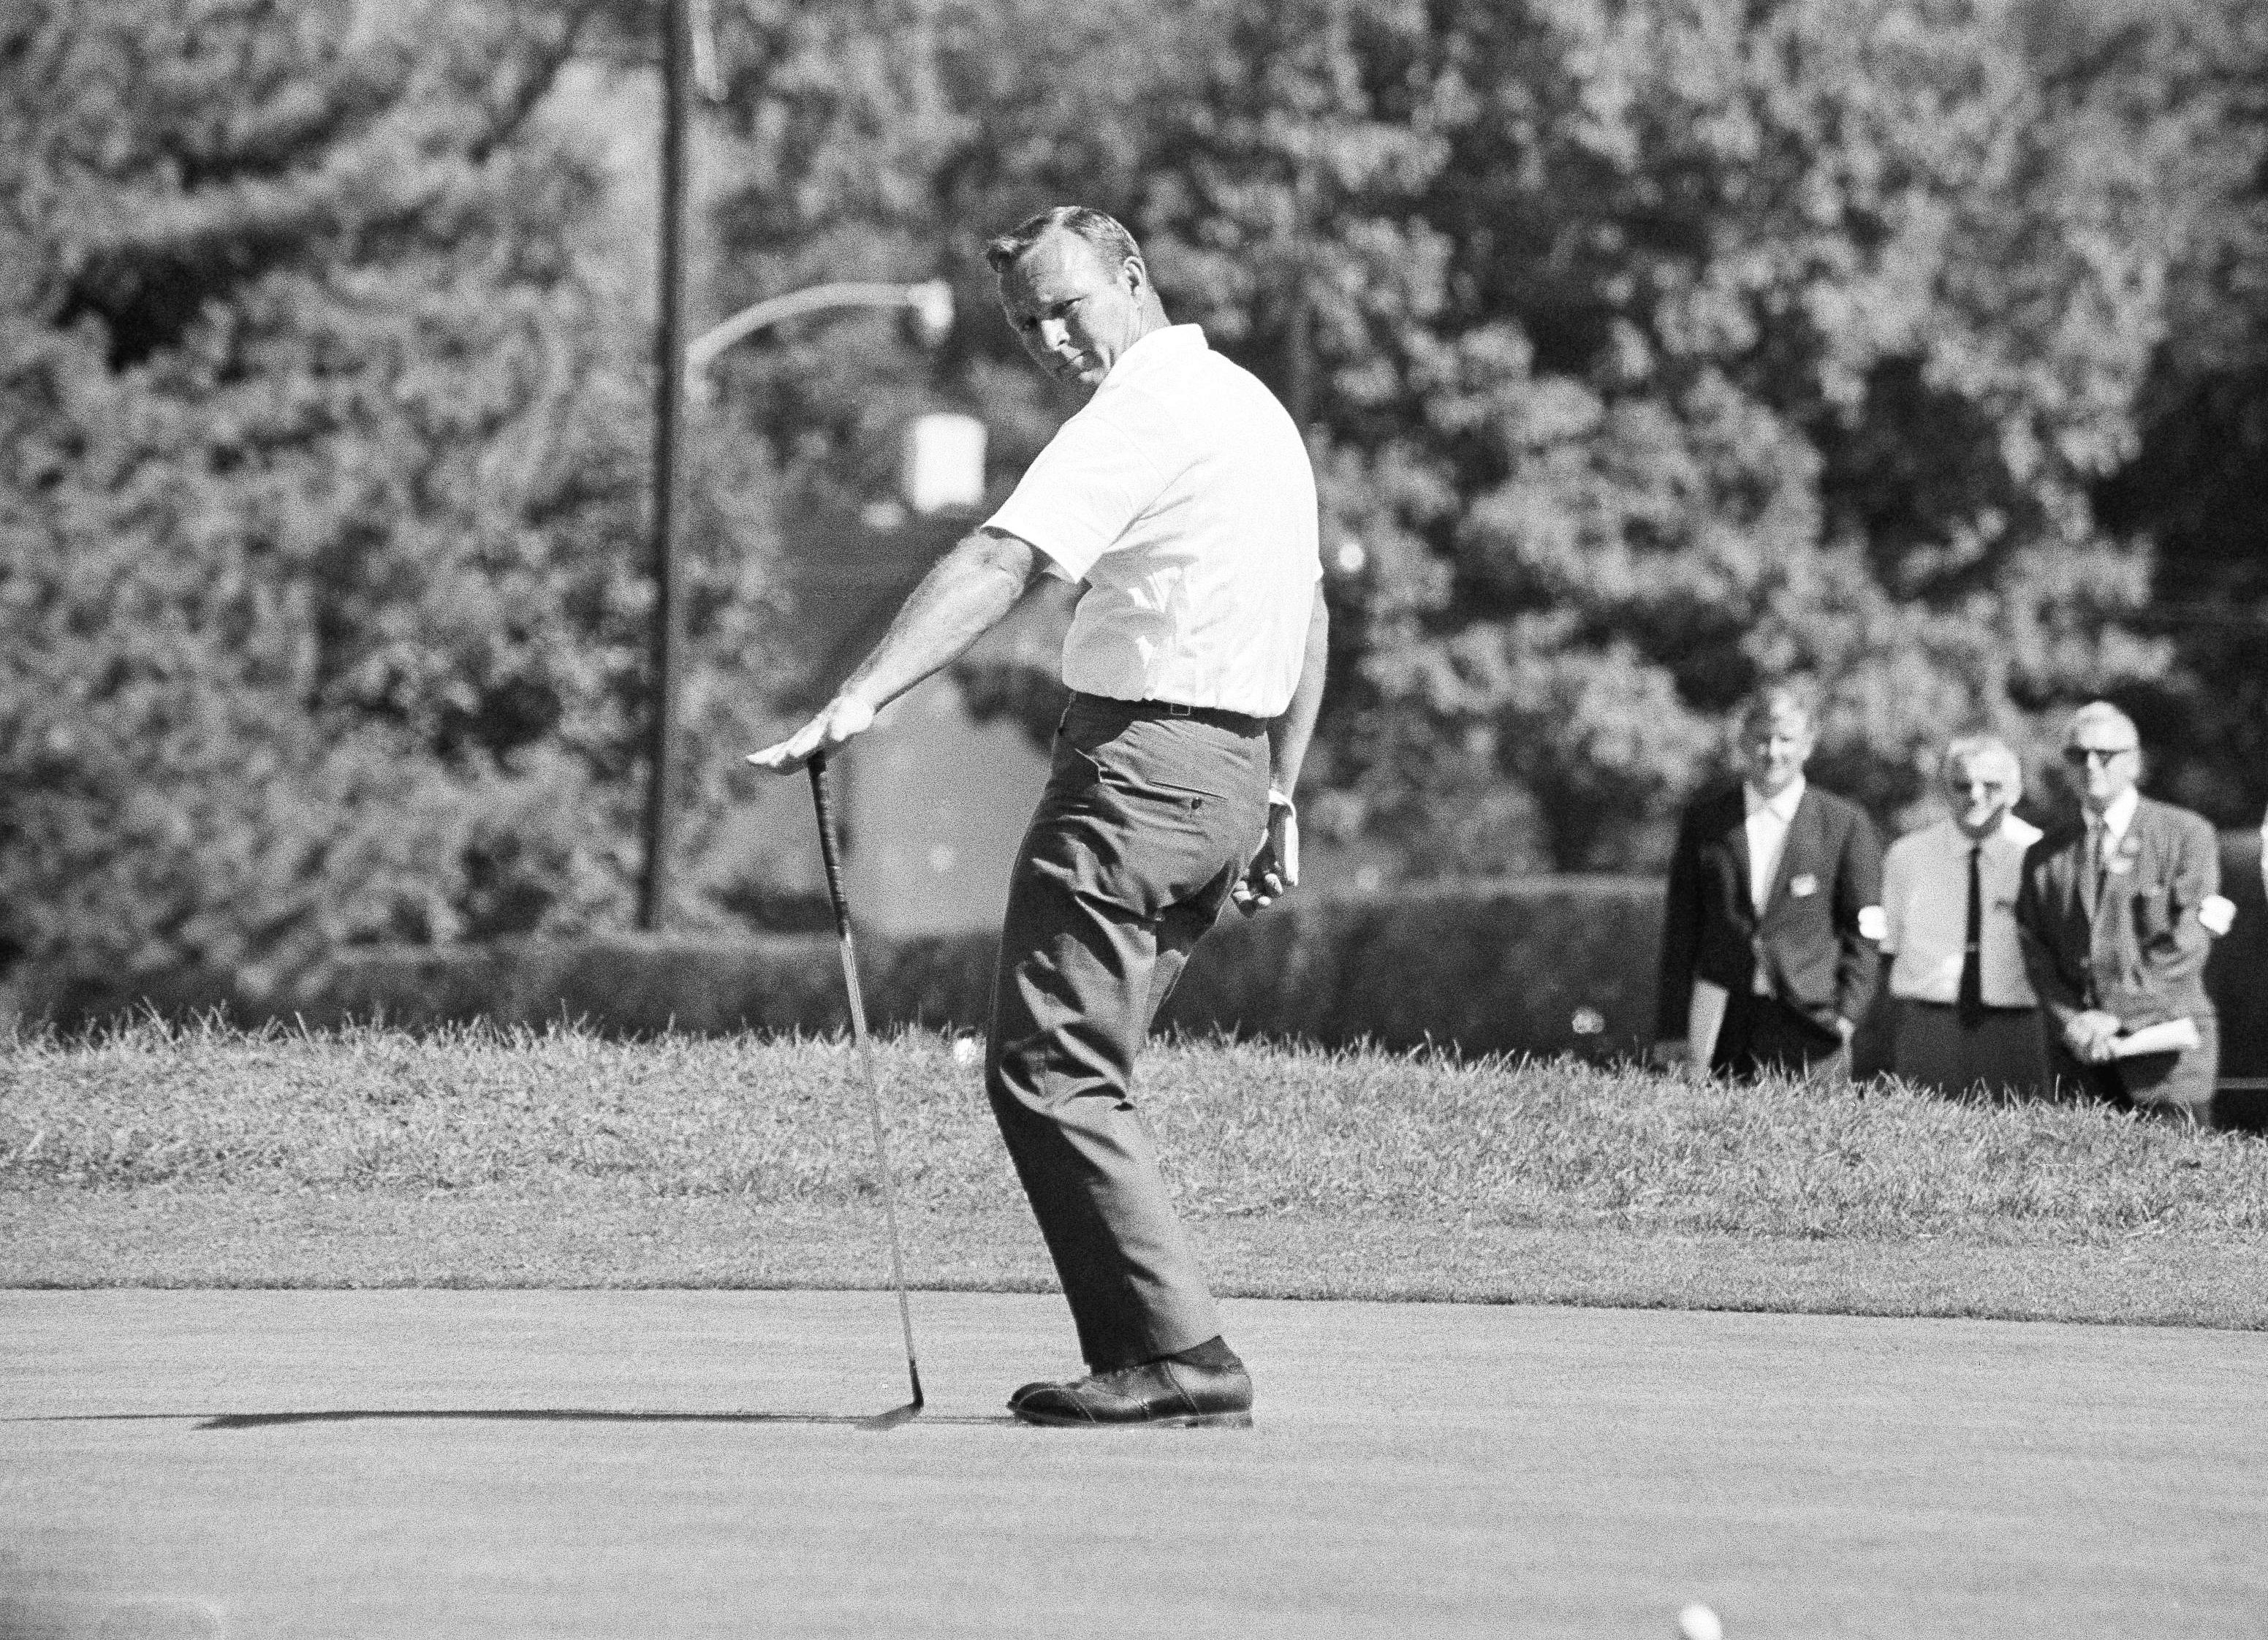 Arnold Palmer does a little balancing act with his putter as he urges a ball that failed to drop in the hole on the 6th green in first round of the Philadelphia Golf Classic on Sept. 15, 1967 at Whitemarsh Valley Country Club in Laurel Valley, Pa.